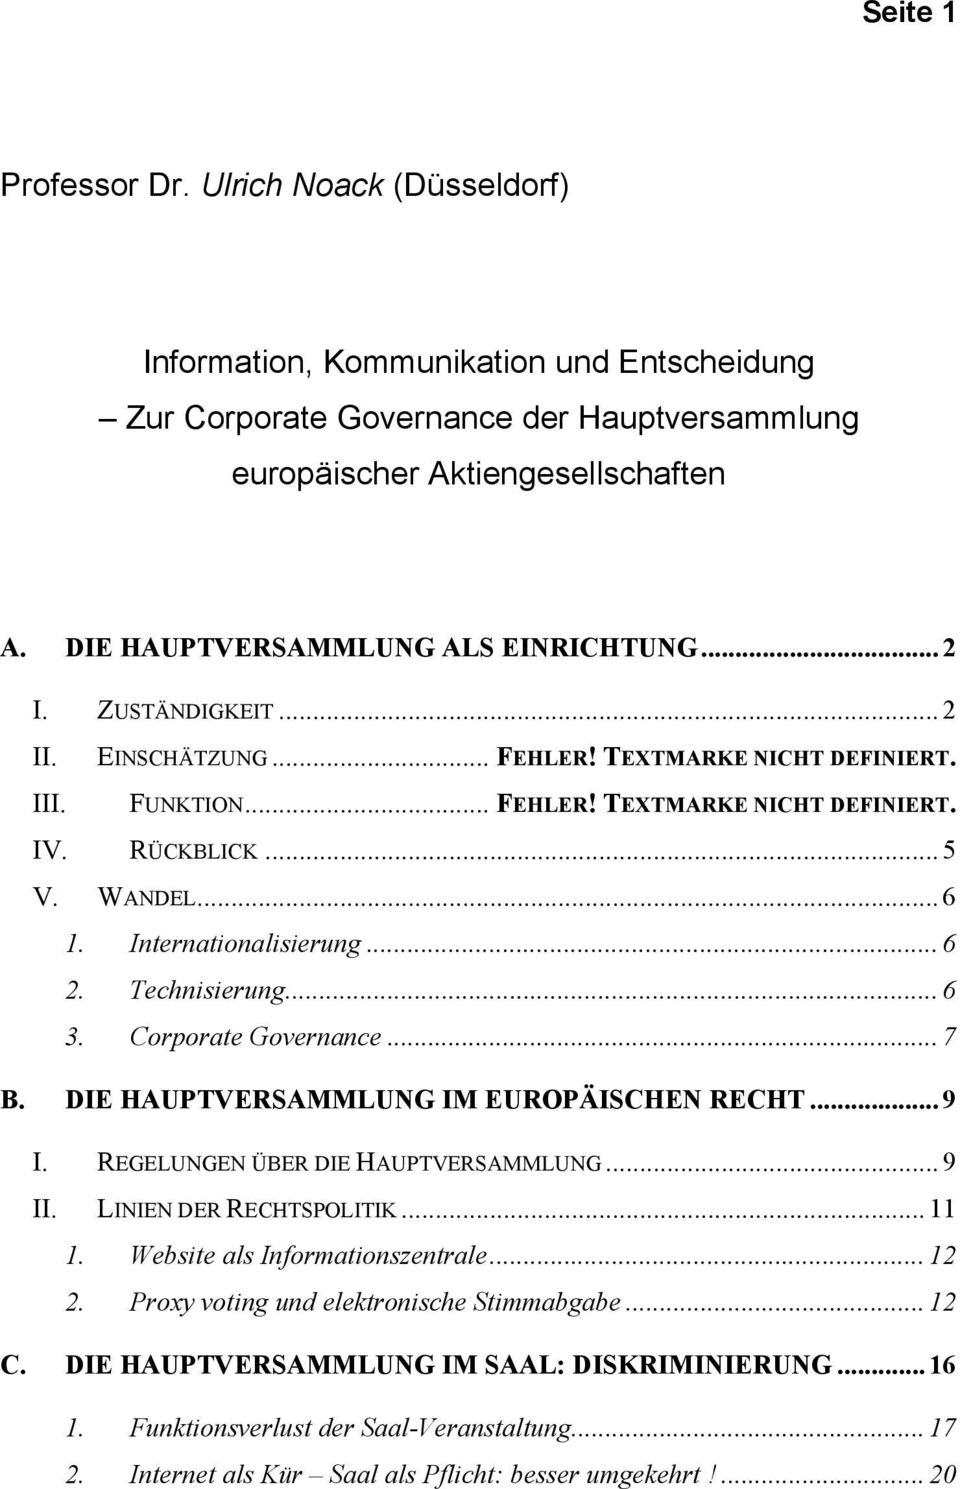 .. 6 1. Internationalisierung... 6 2. Technisierung... 6 3. Corporate Governance... 7 B. DIE HAUPTVERSAMMLUNG IM EUROPÄISCHEN RECHT... 9 I. REGELUNGEN ÜBER DIE HAUPTVERSAMMLUNG... 9 II.